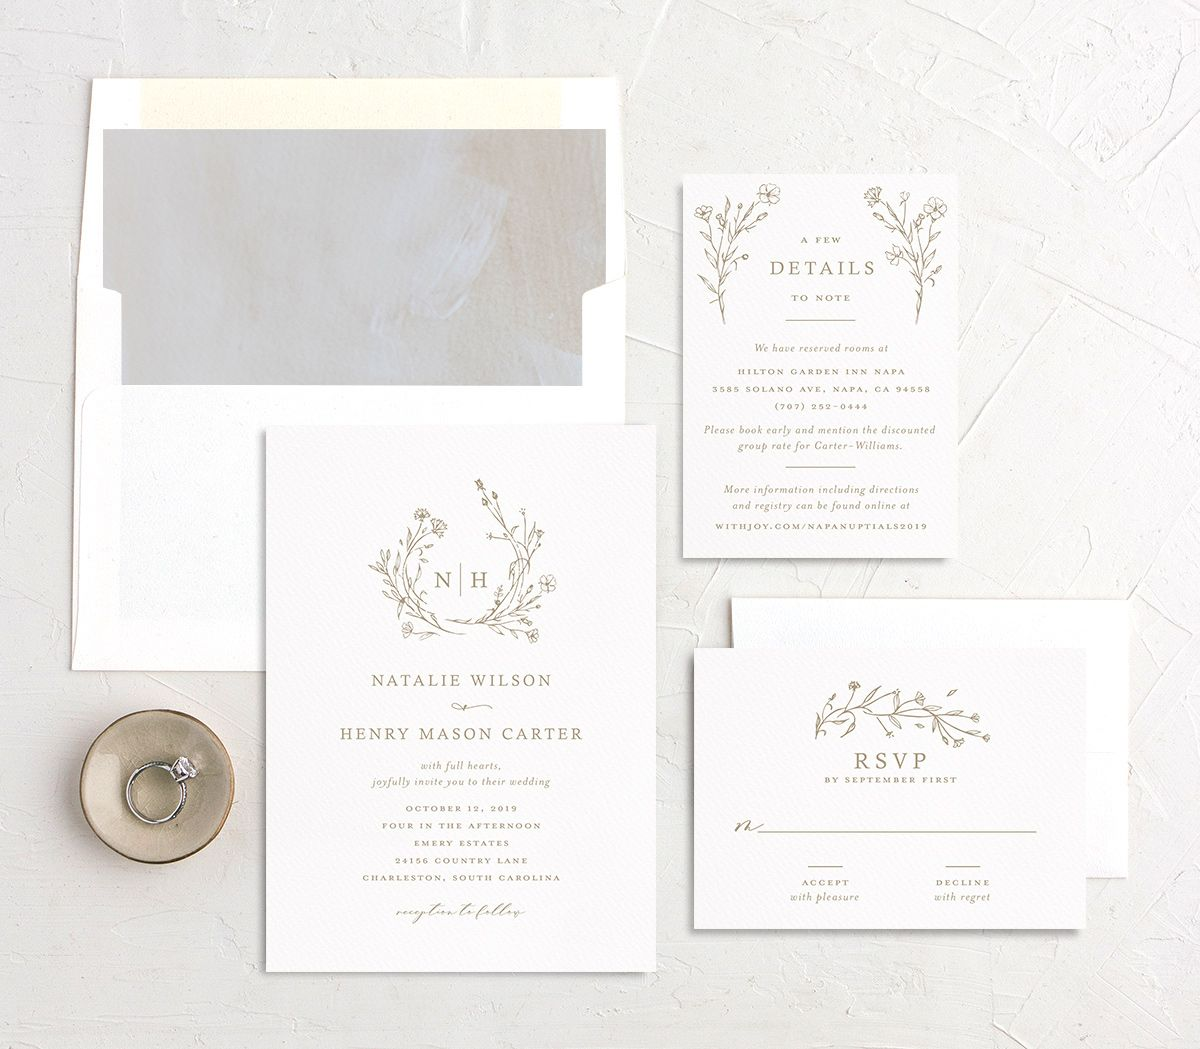 Natural Monogram wedding invite suite in tan